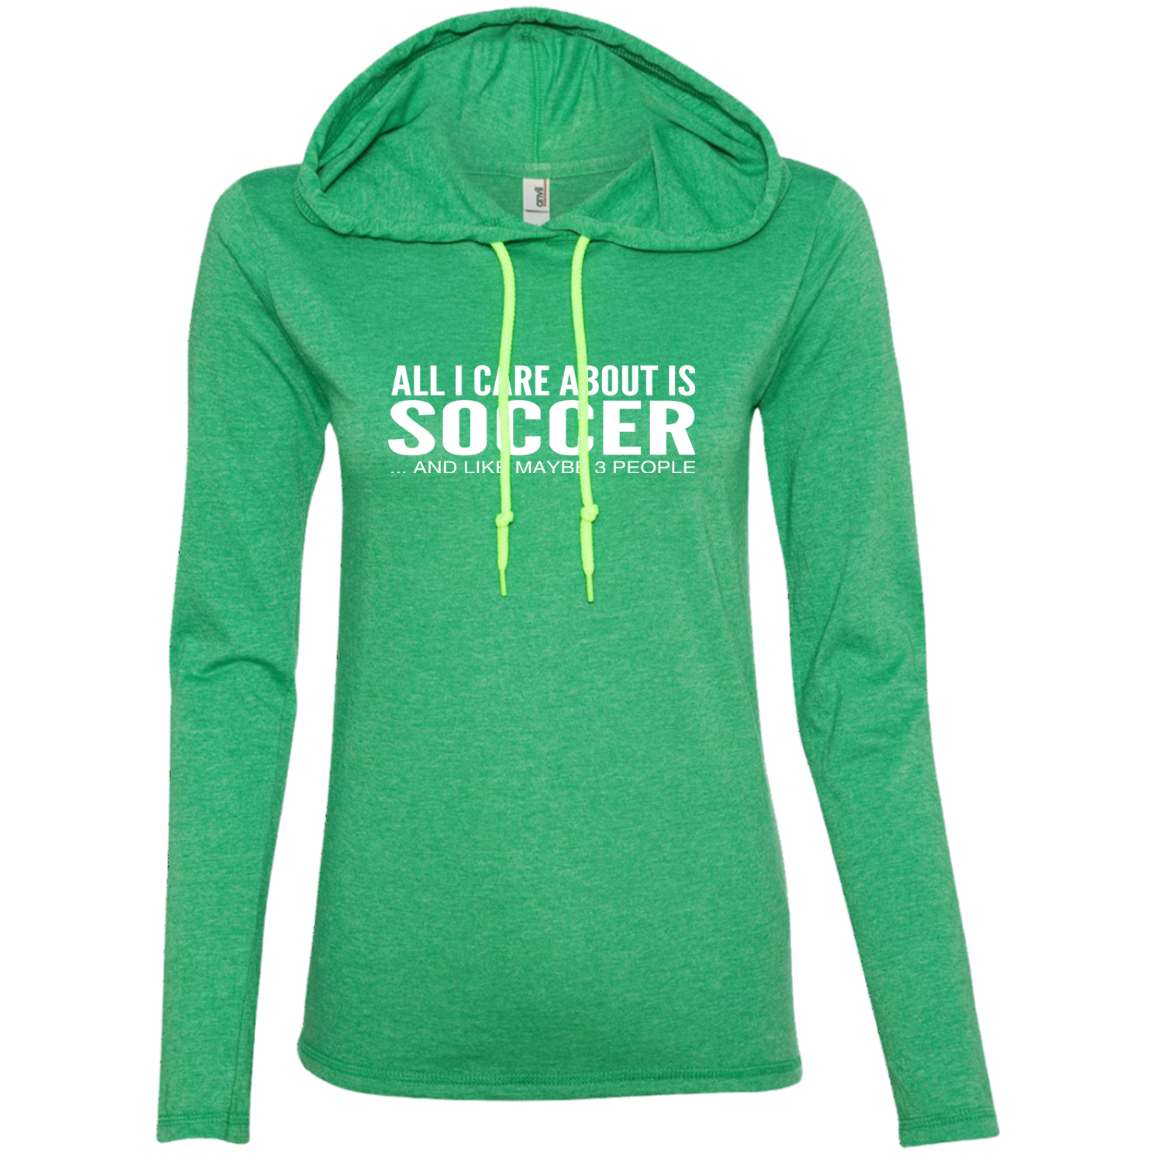 All I Care About Is Soccer And Like Maybe 3 People Ladies Tee Shirt Hoodies